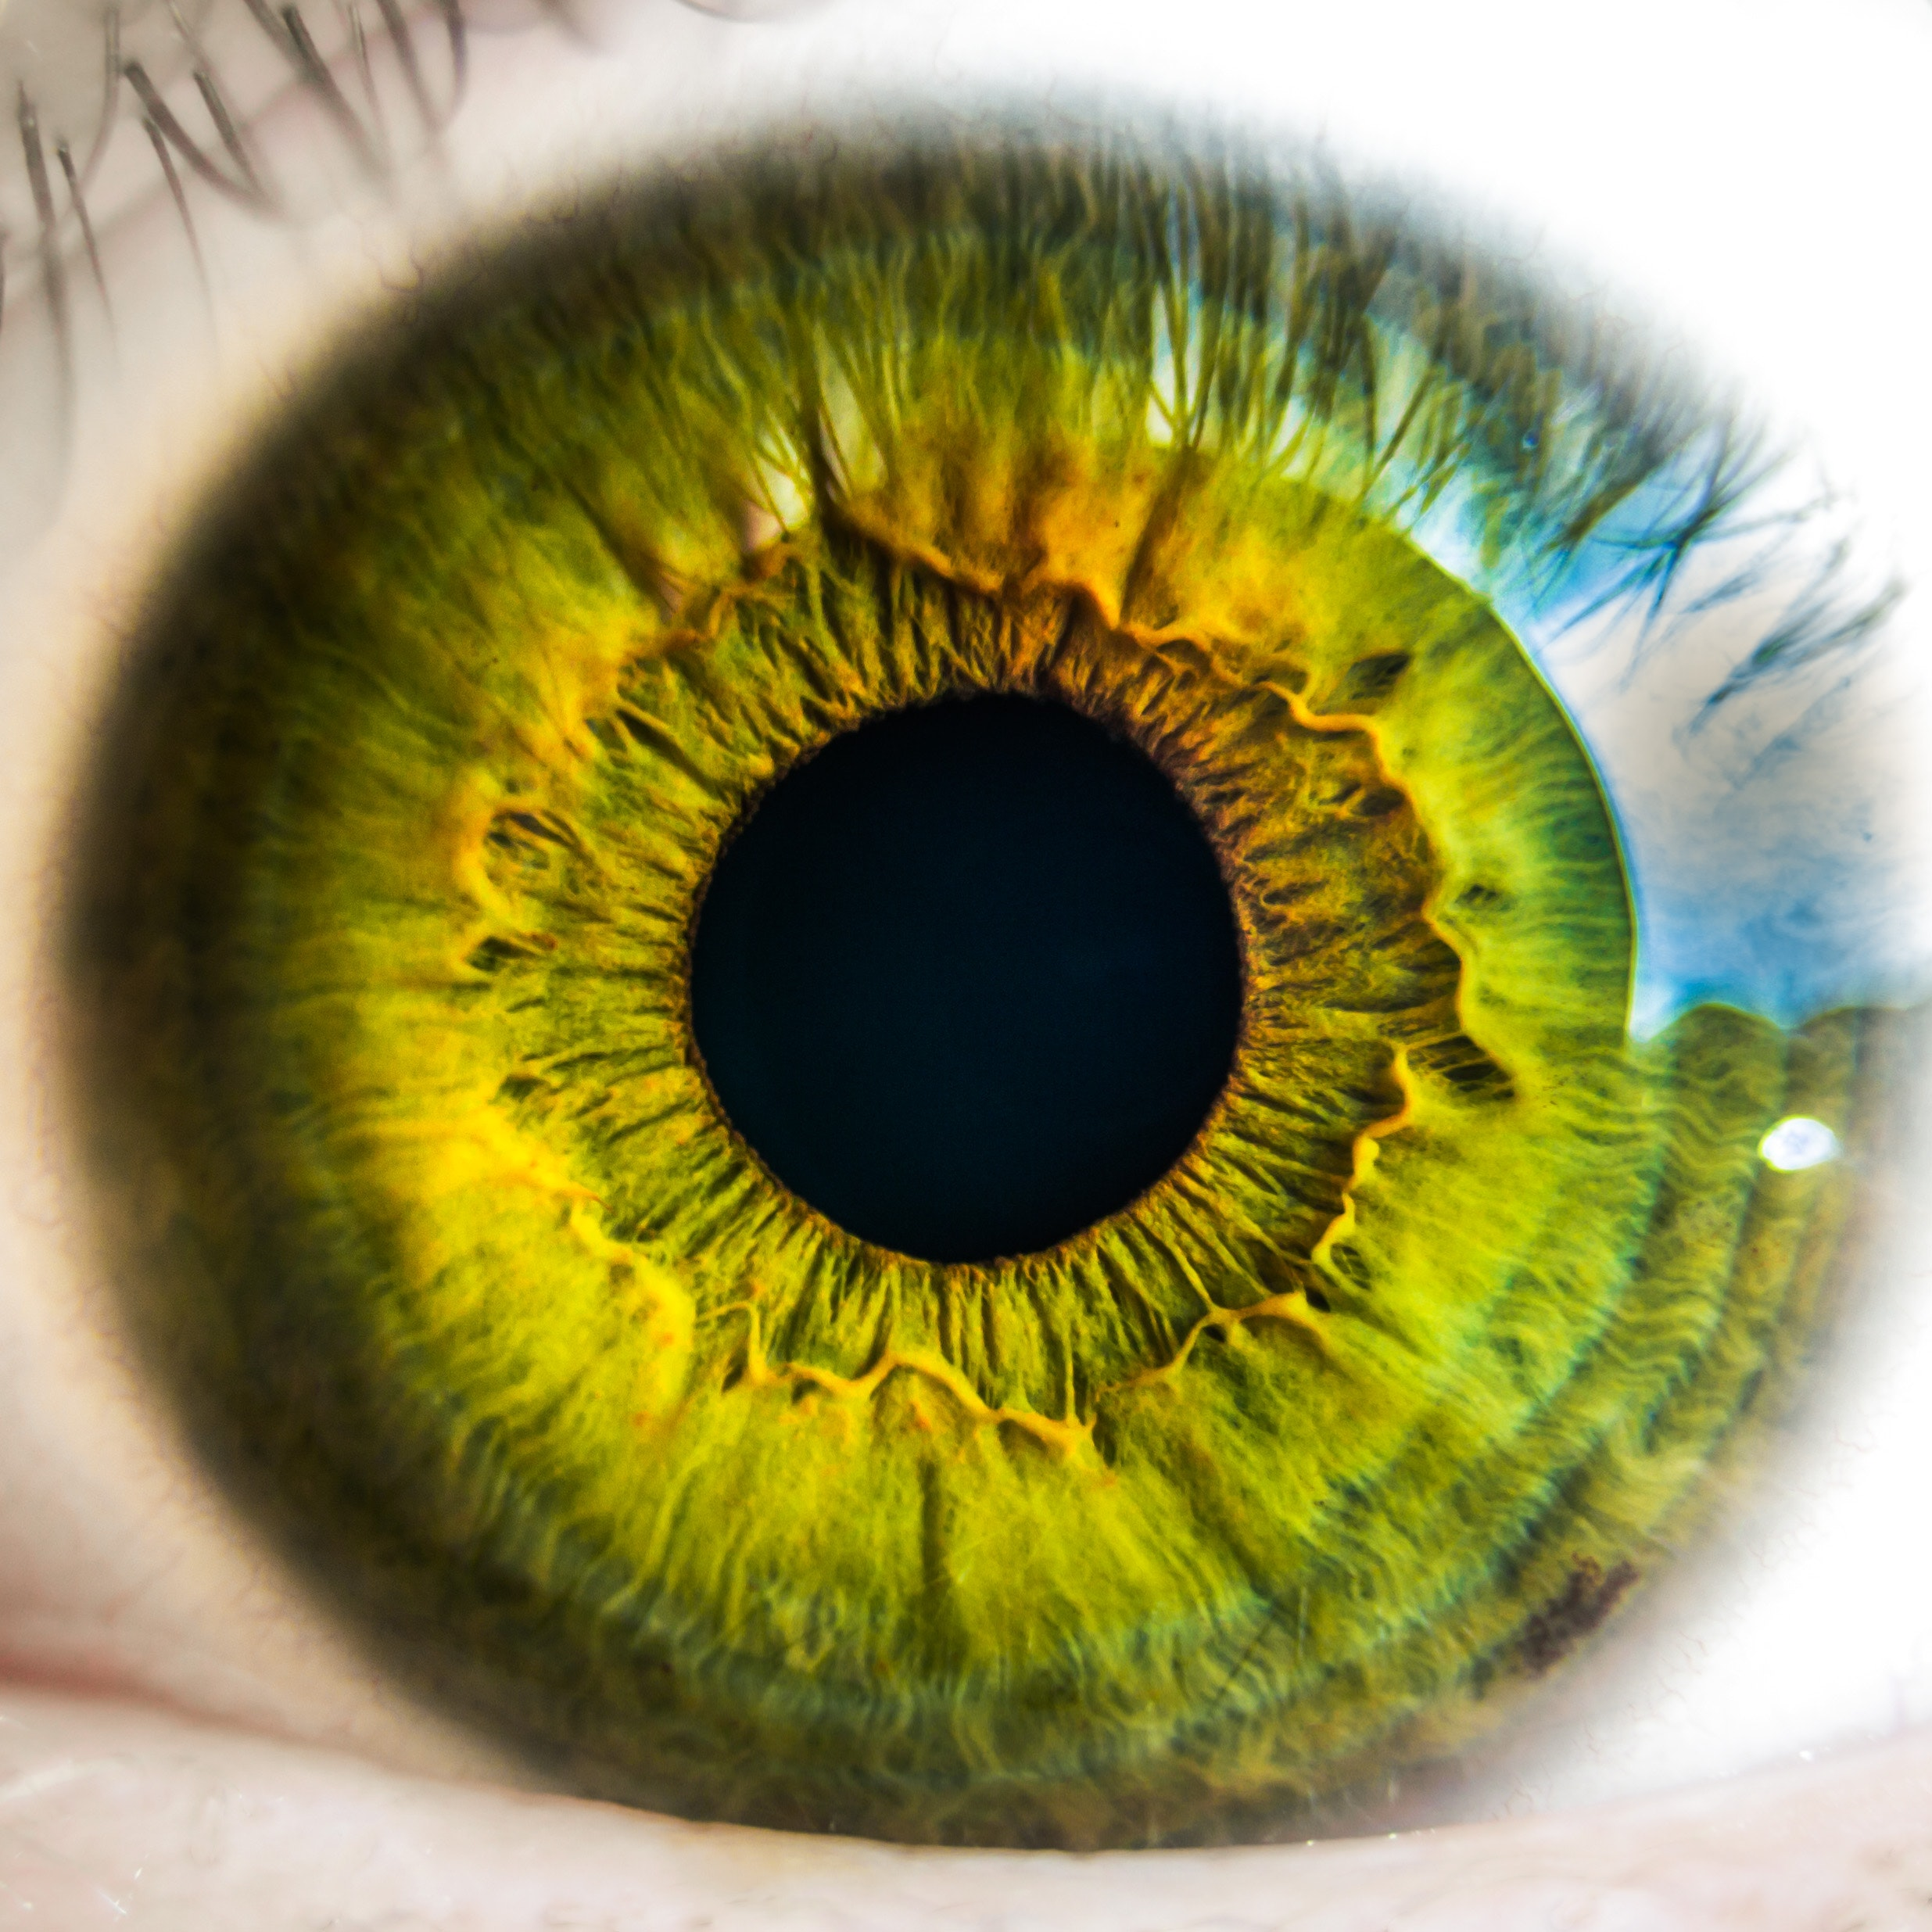 clairvoyanceanatomy-biology-eye-8588.jpg